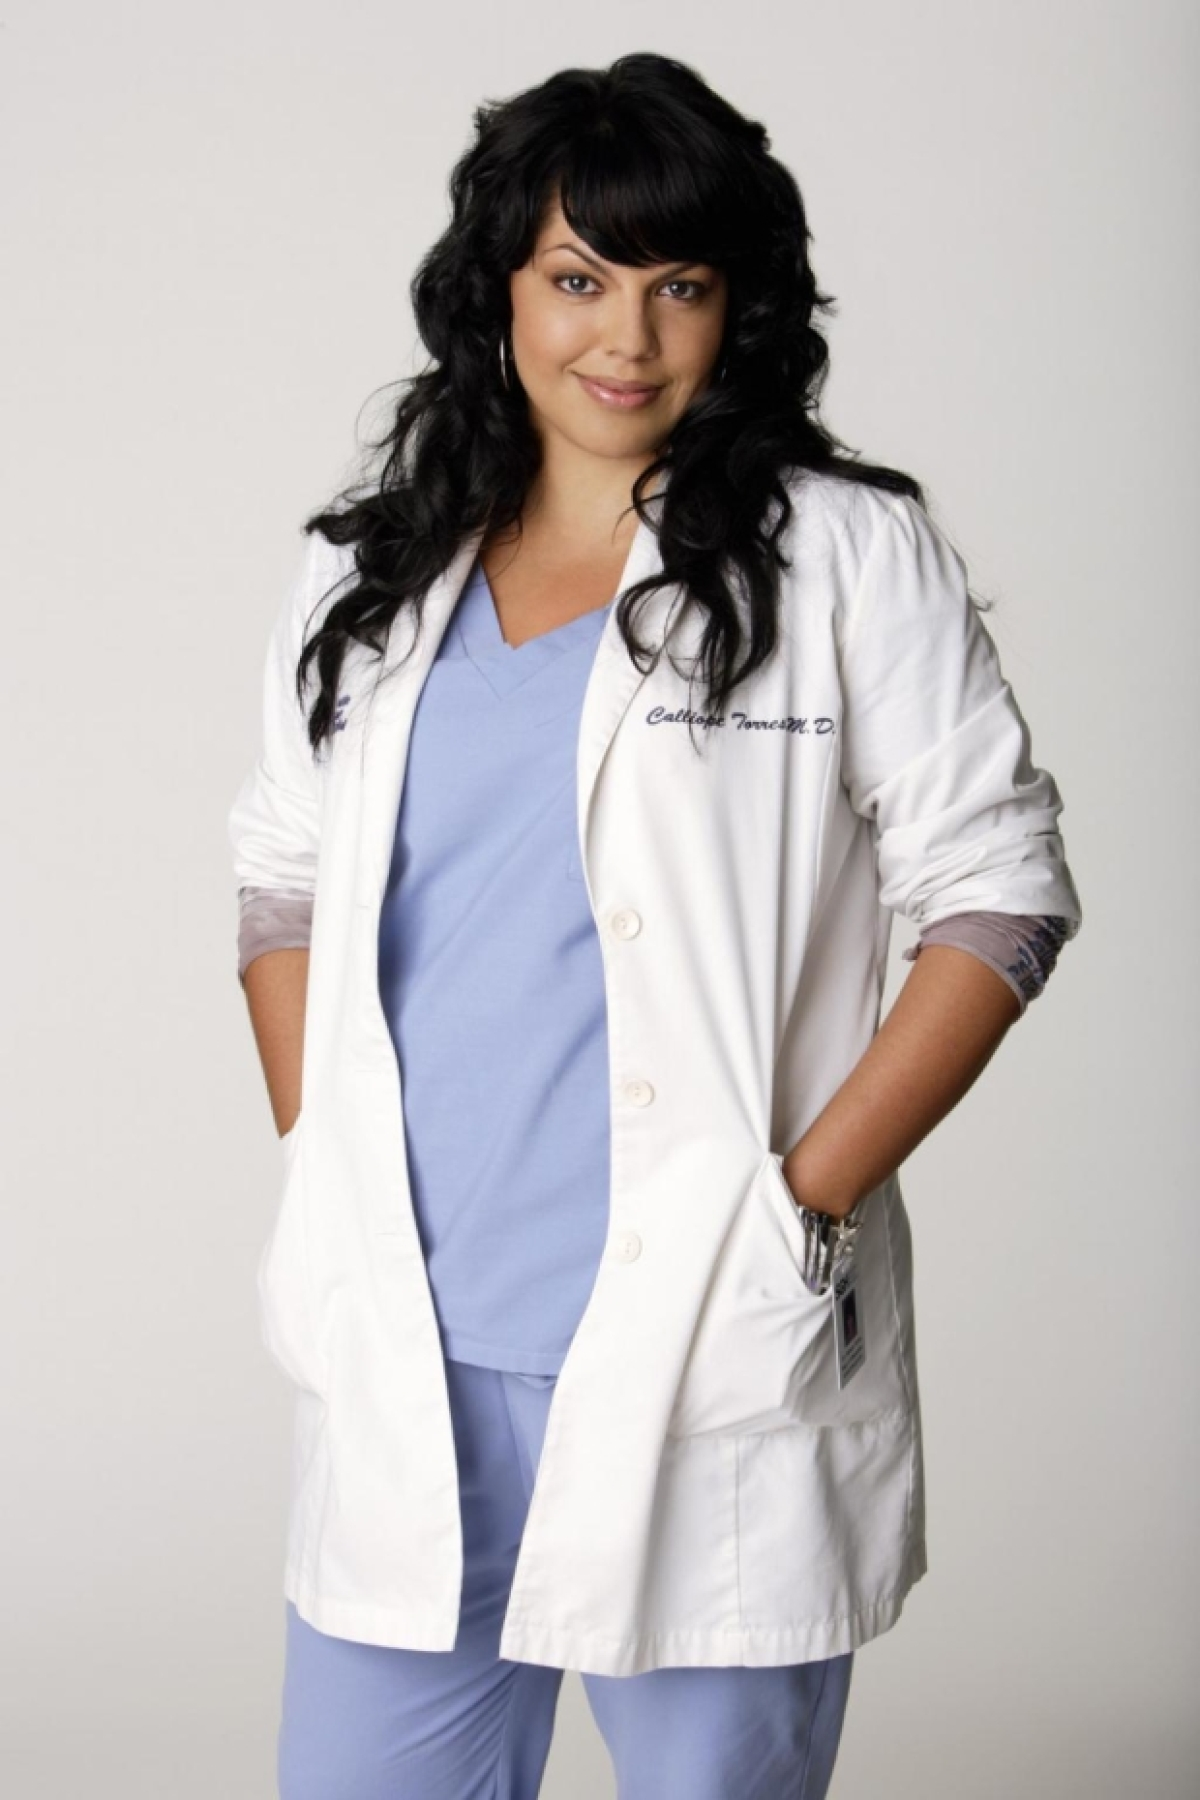 greys anatomy star sara ramirez joins producing team of